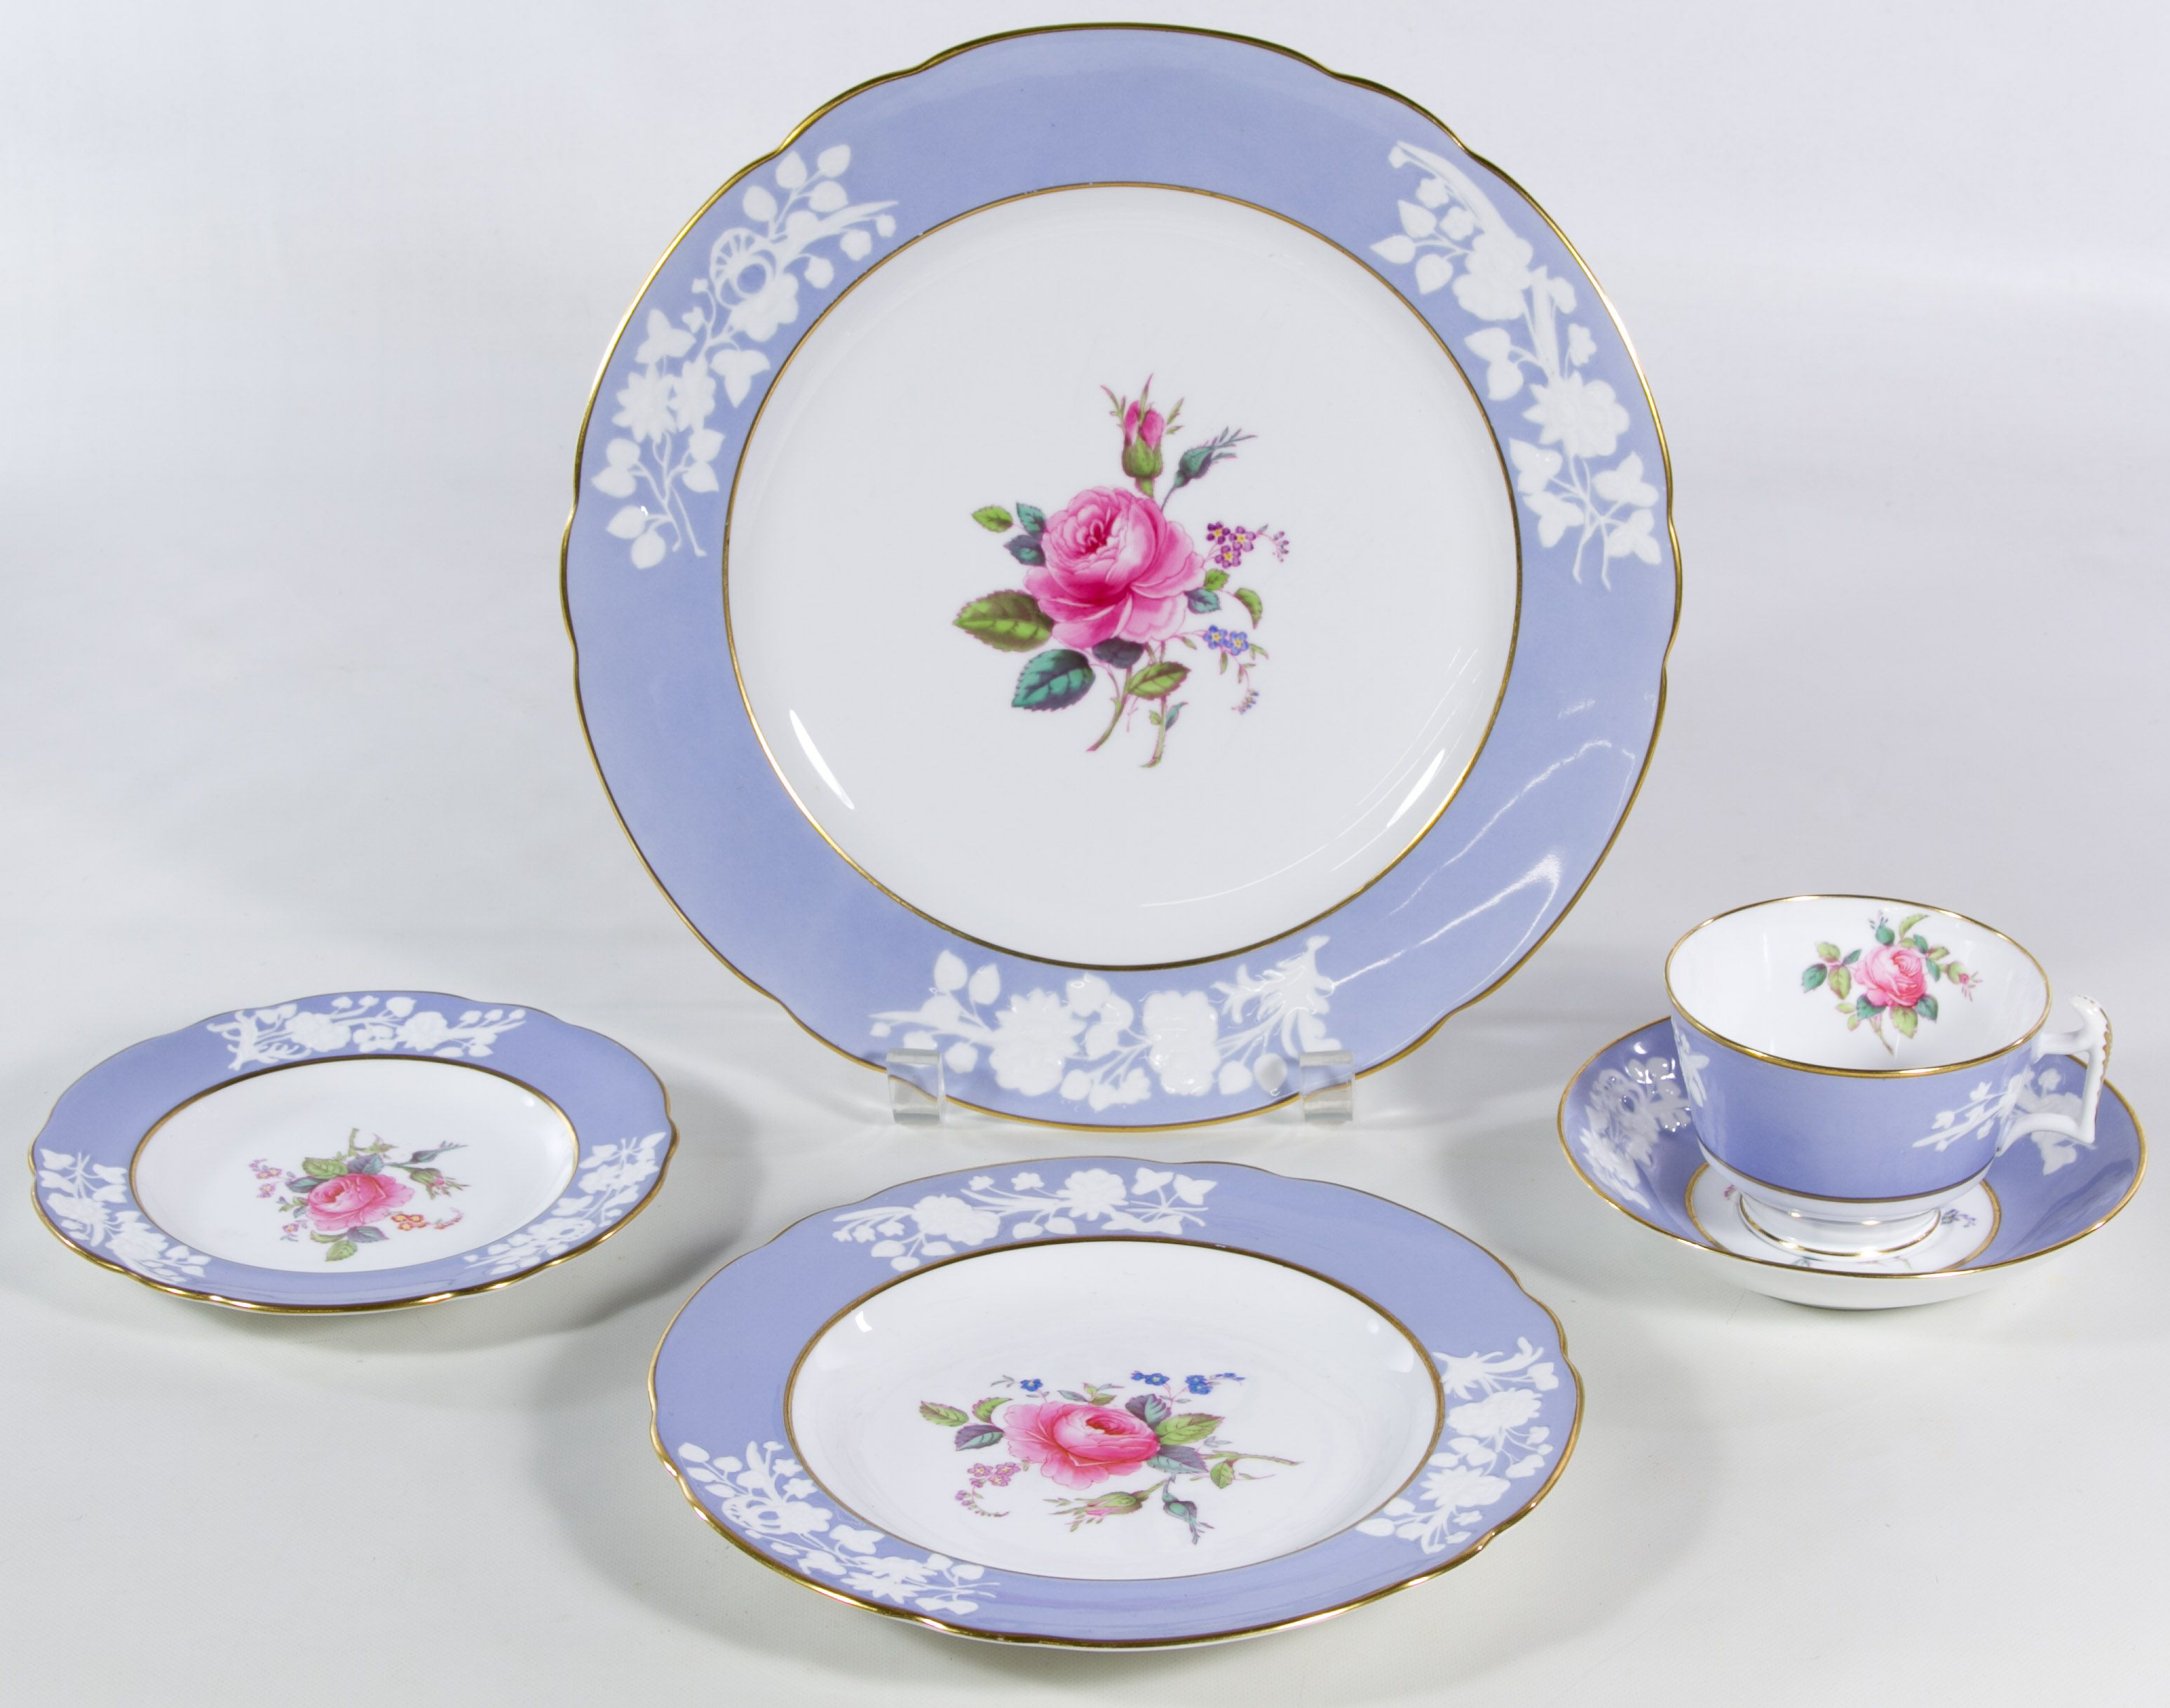 """Lot 400: Copeland Spode """"Maritime Rose"""" China Service; Including (12) dinner plates, (8) bread plates, (8) salad plates, (15) cups and (20) saucers"""